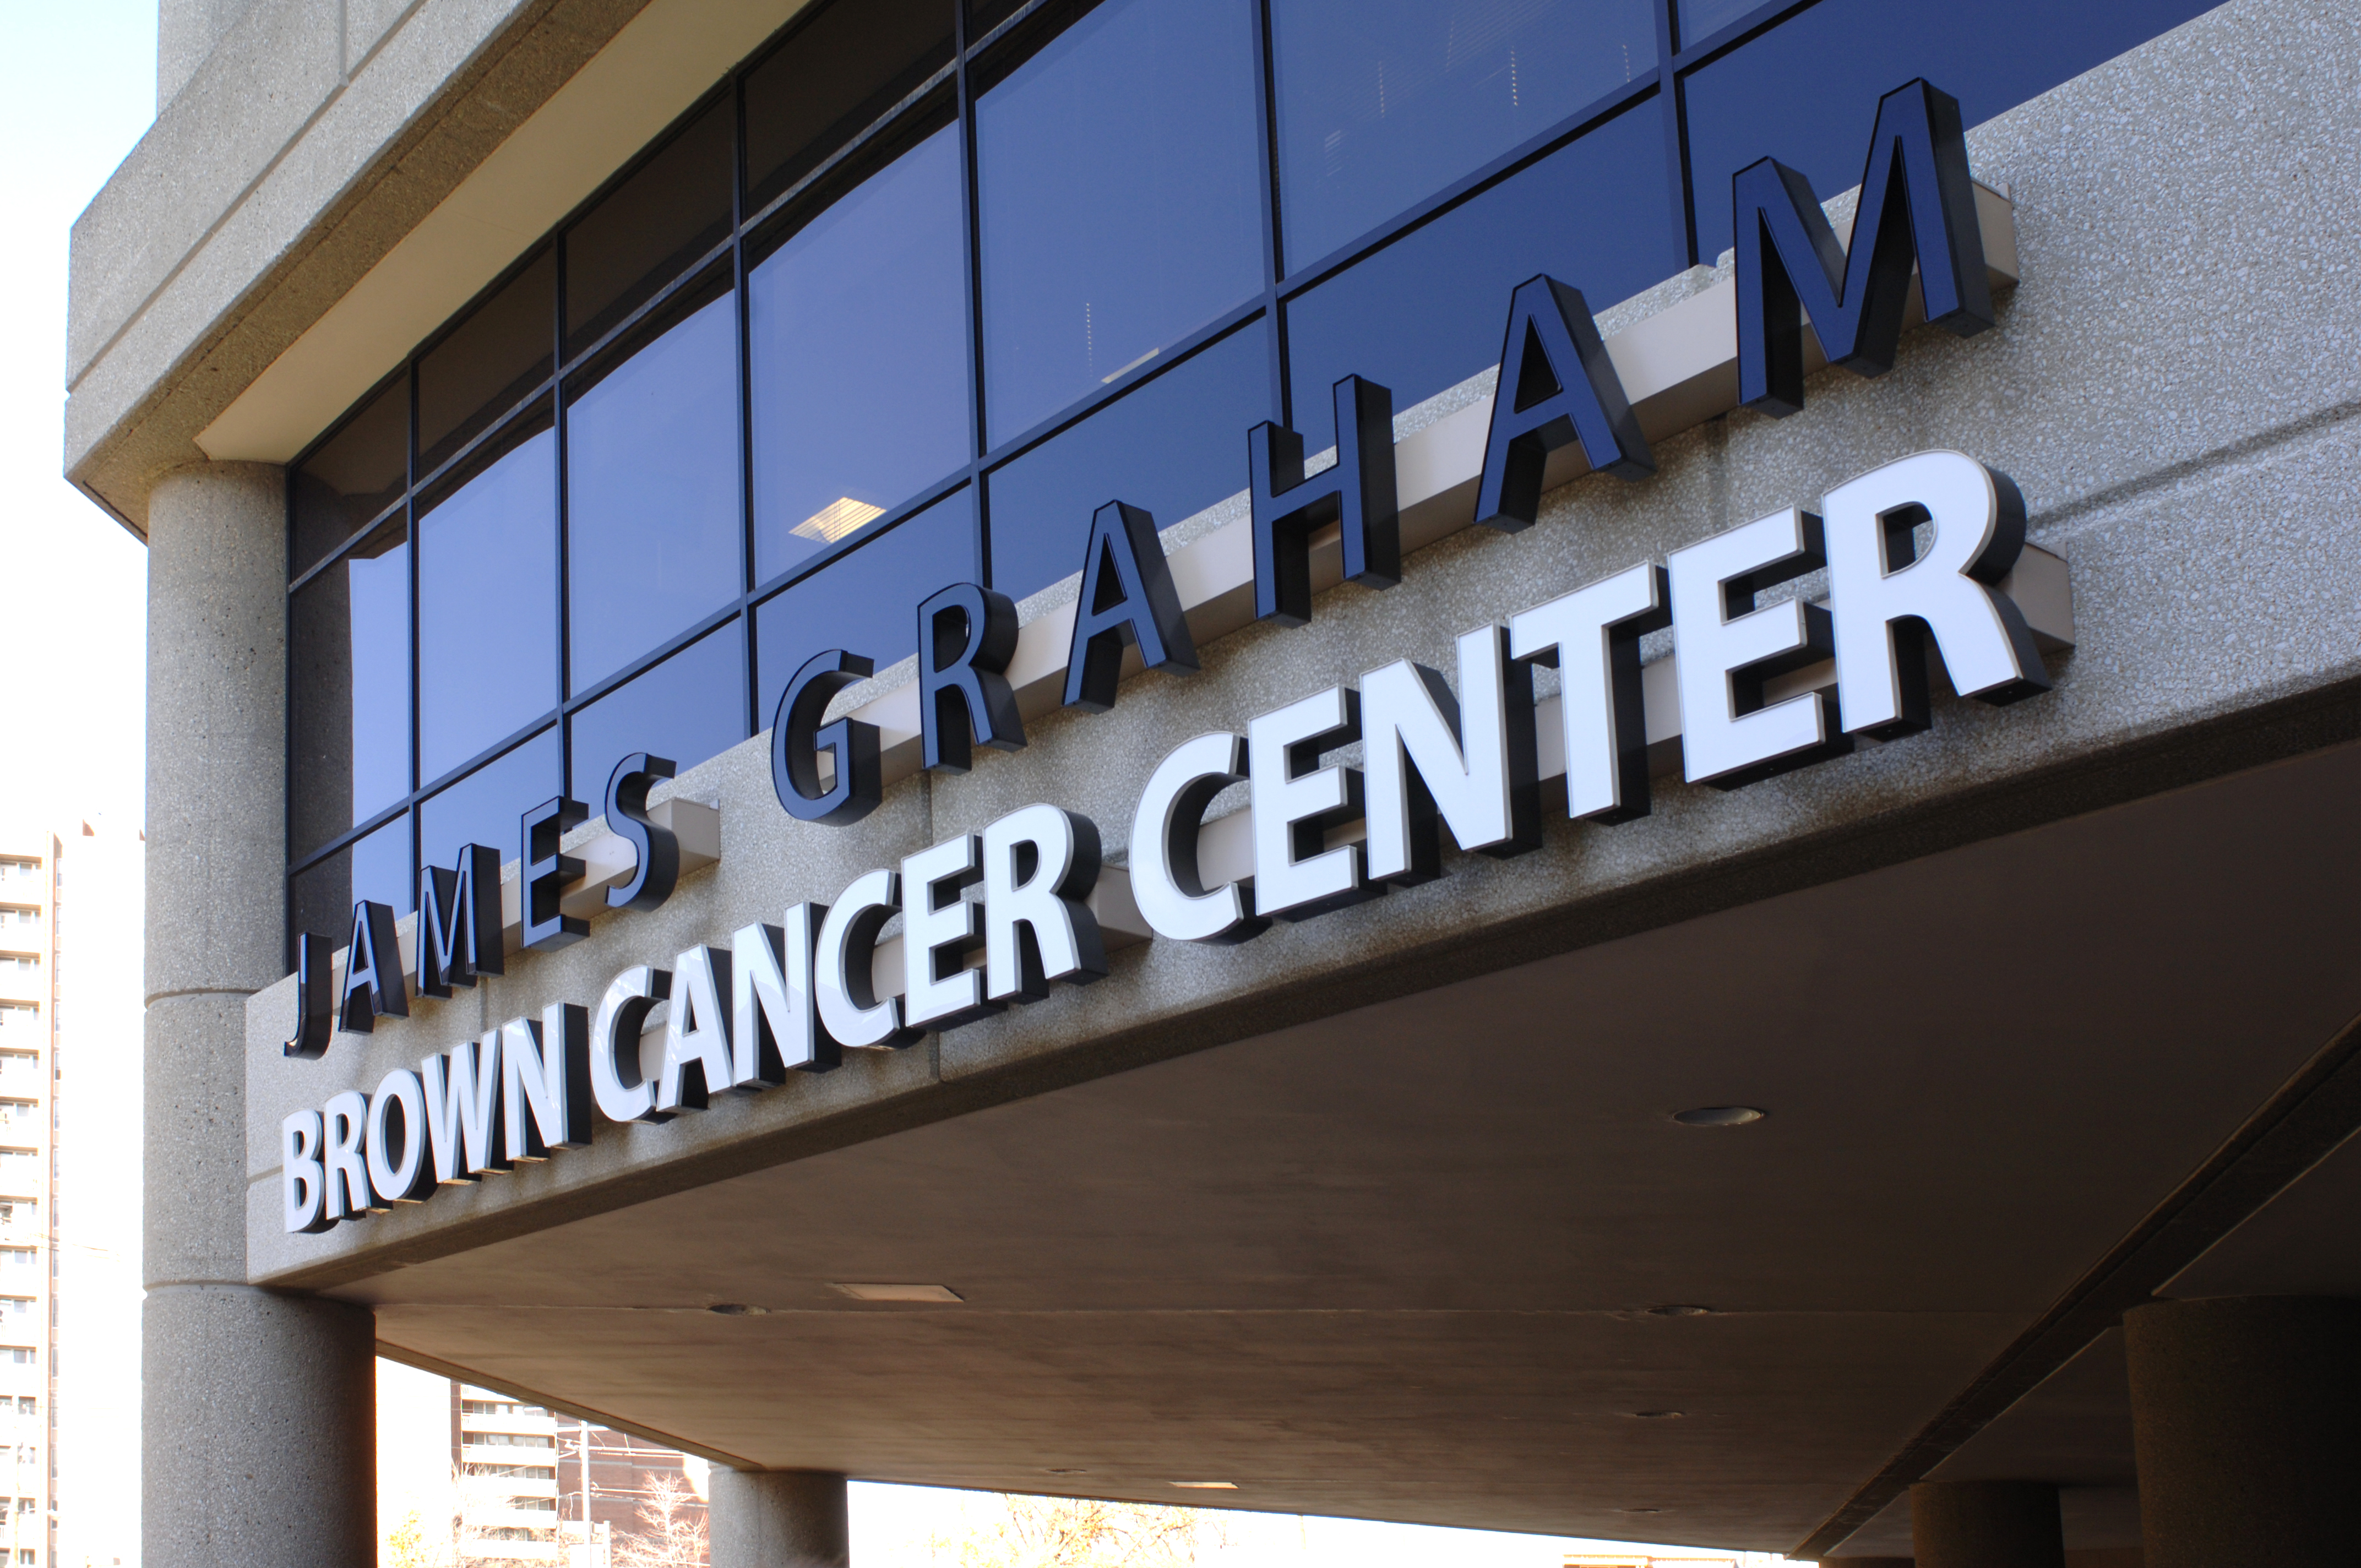 UofL's James Graham Brown Cancer Center earns 3-year accreditation from American College of Radiology